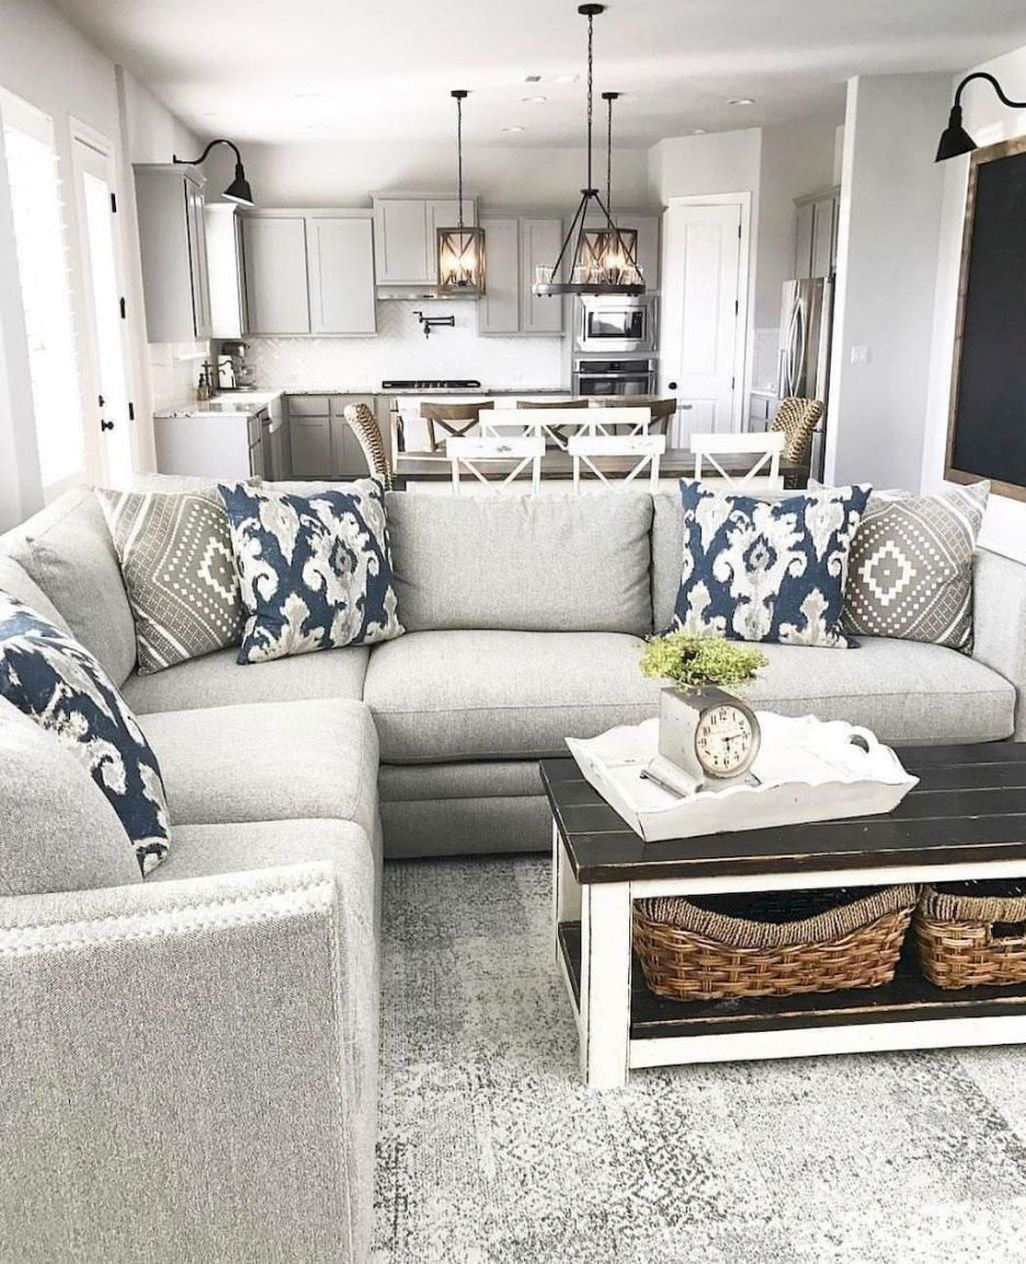 Home Design Ideas Videos: 46 Best Farmhouse Home Decor Ideas You Will Totally Love